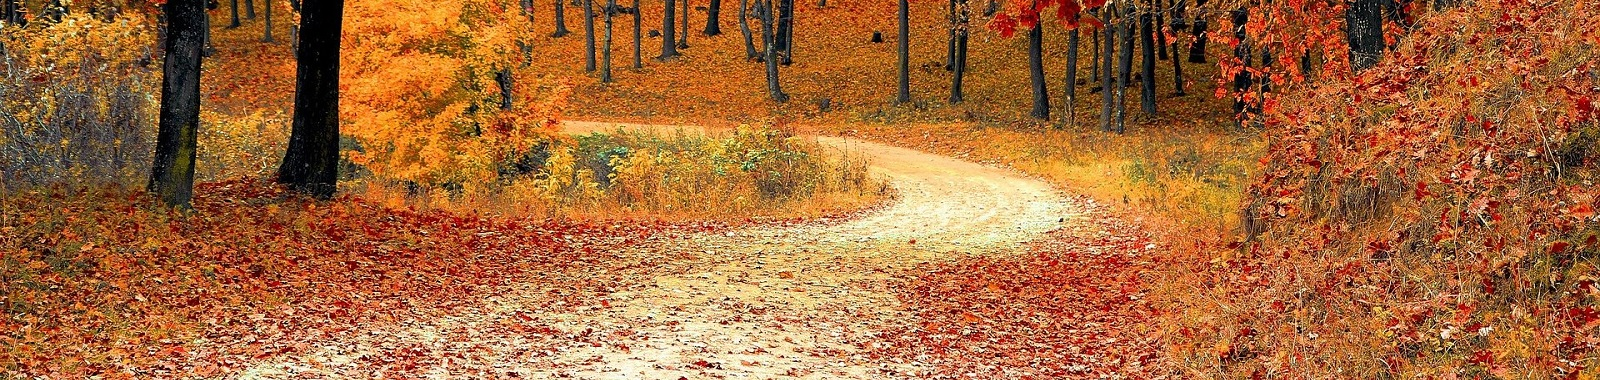 A gravel pathway in the Autumn